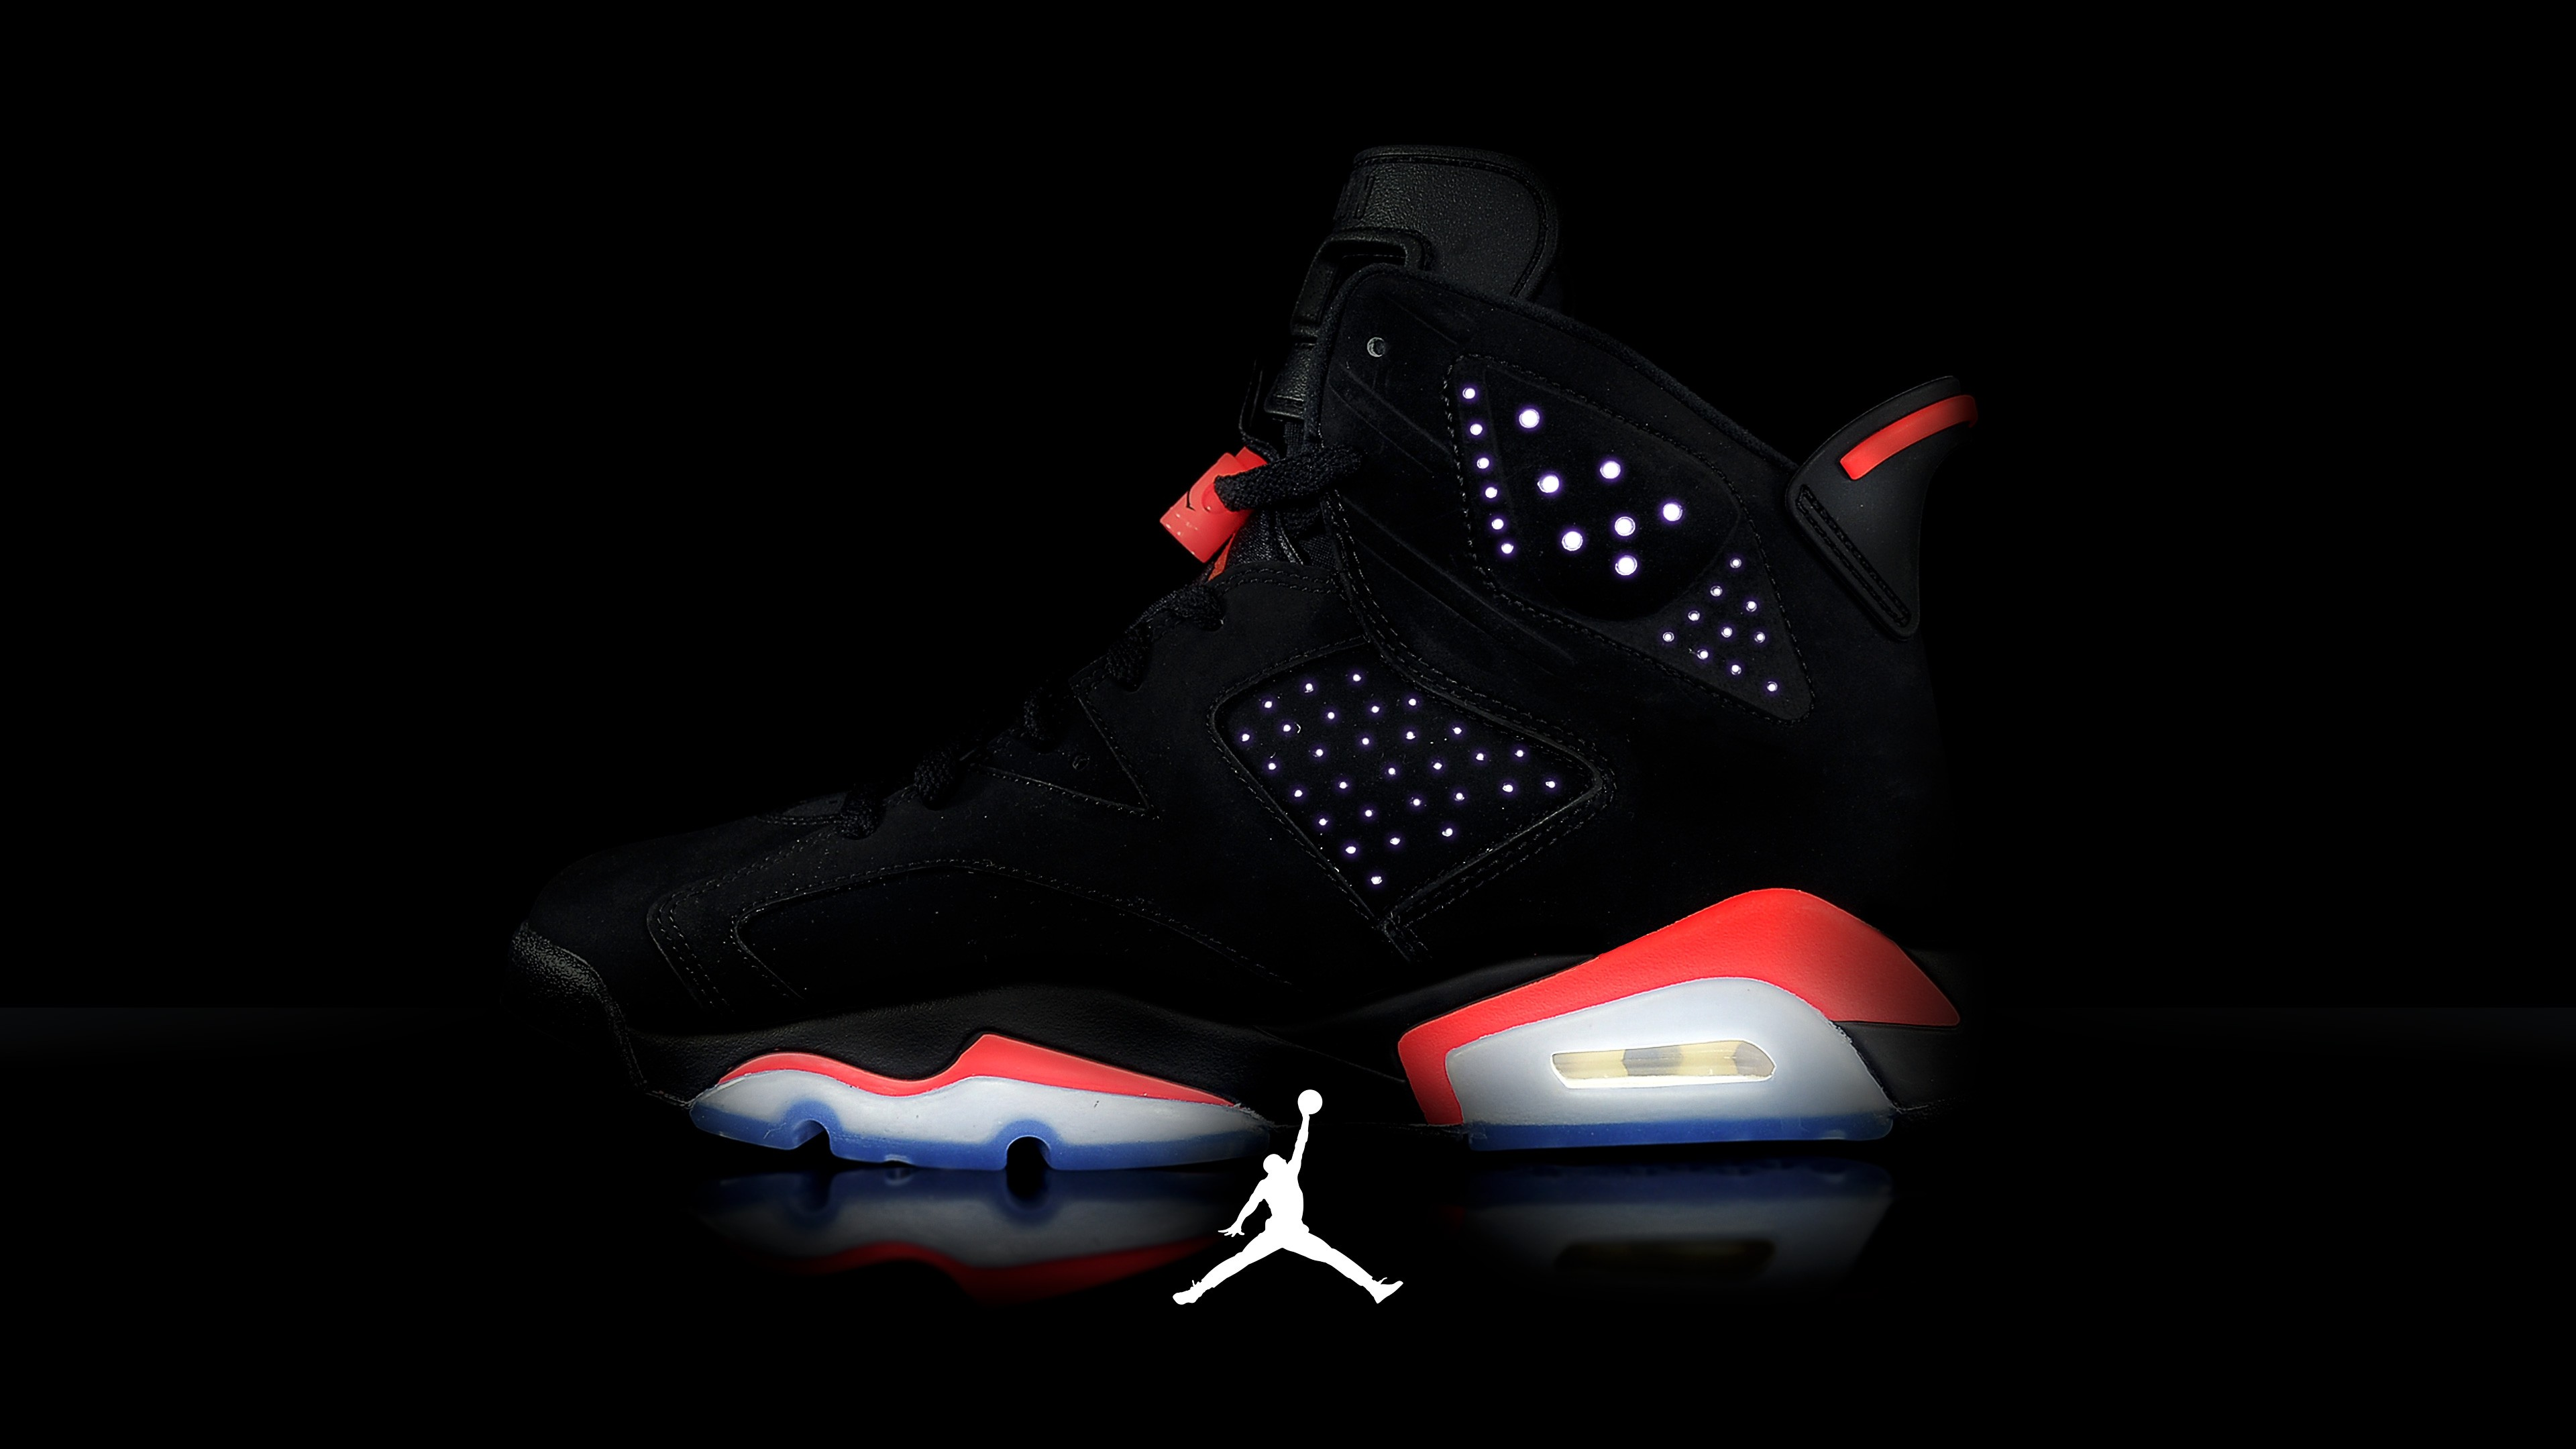 3840x2160 Air Jordan Shoes Images.